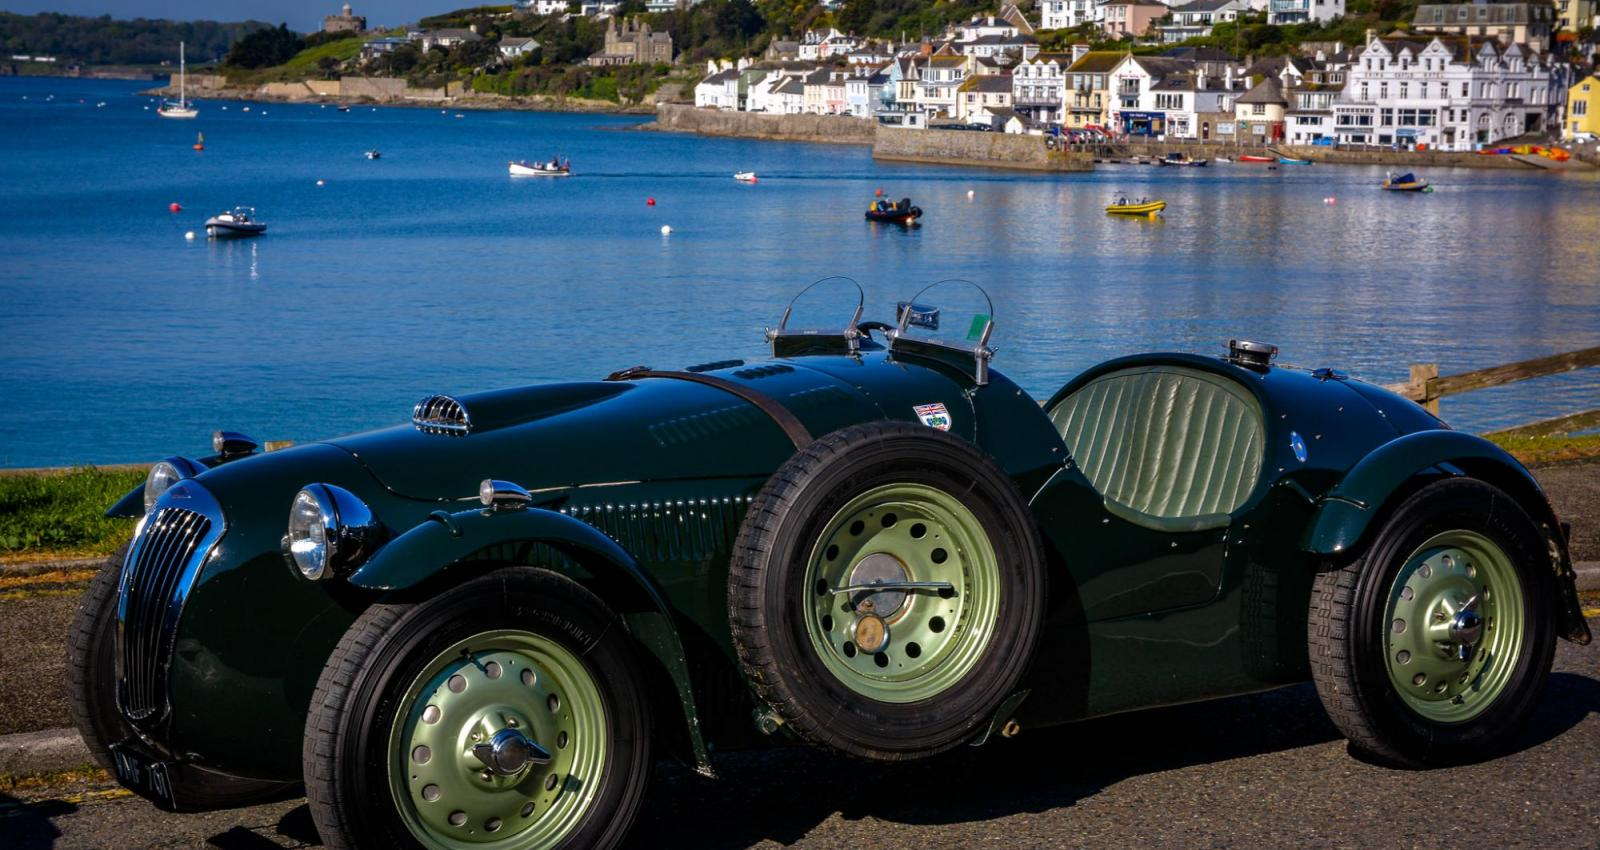 Jazz Band in St Mawes Classic Car Festival - West End Duo